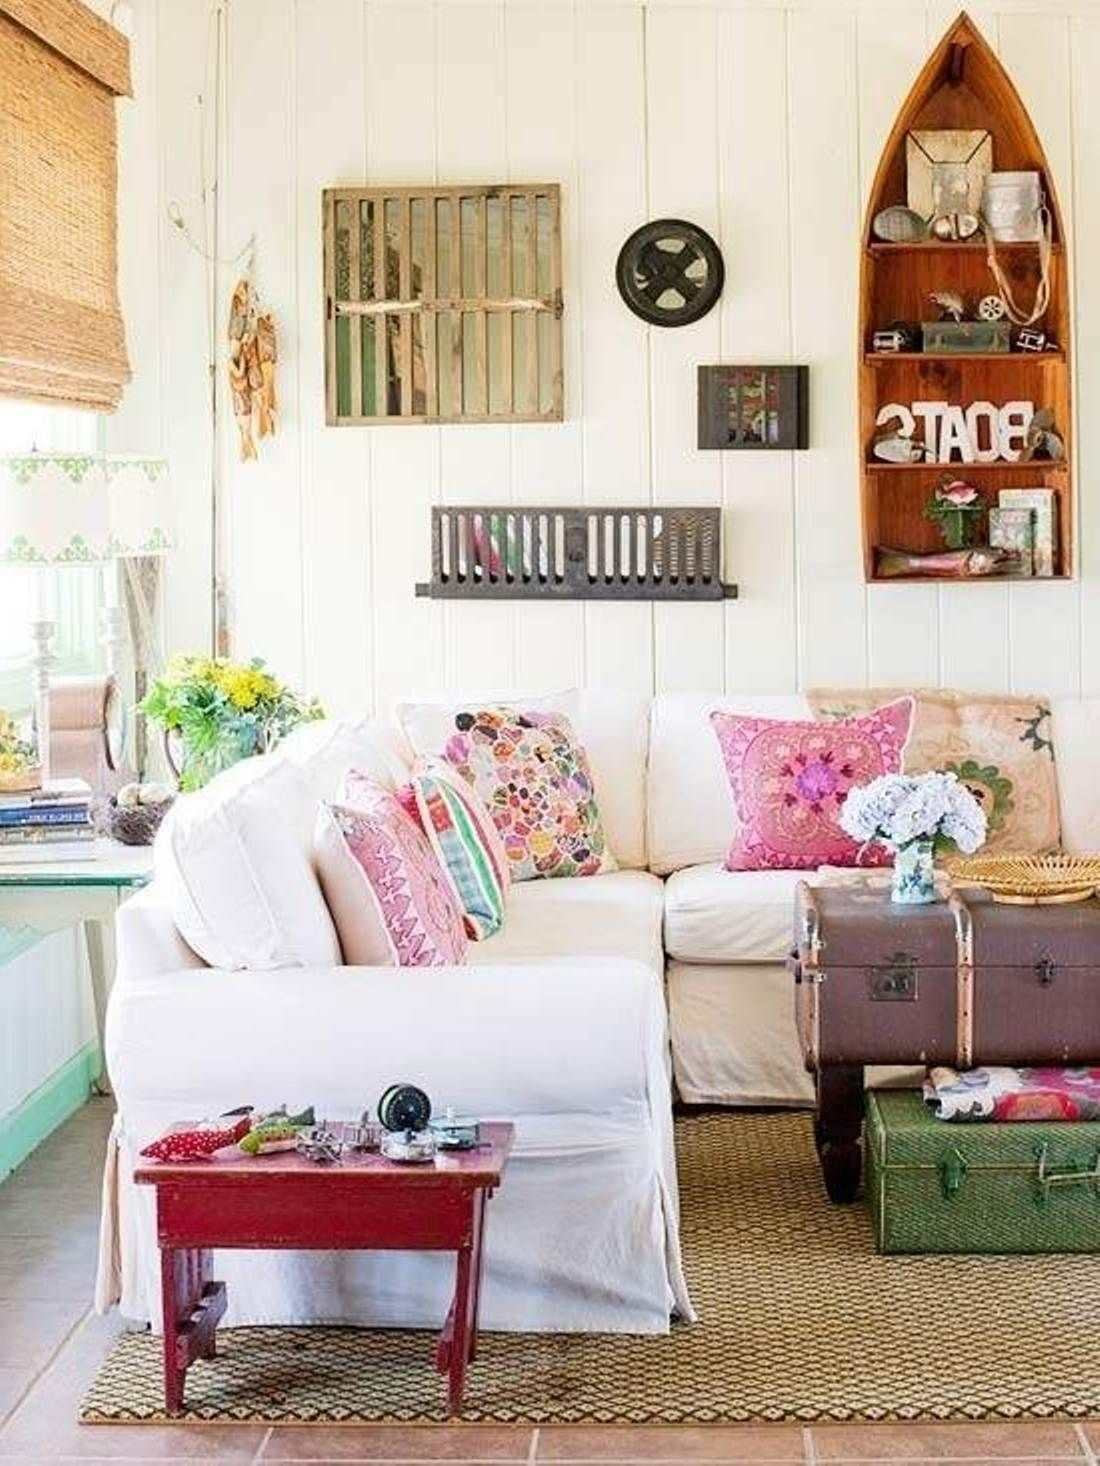 Beach Cottage Bedroom Decorating Ideas - Bing Images   decorating ...